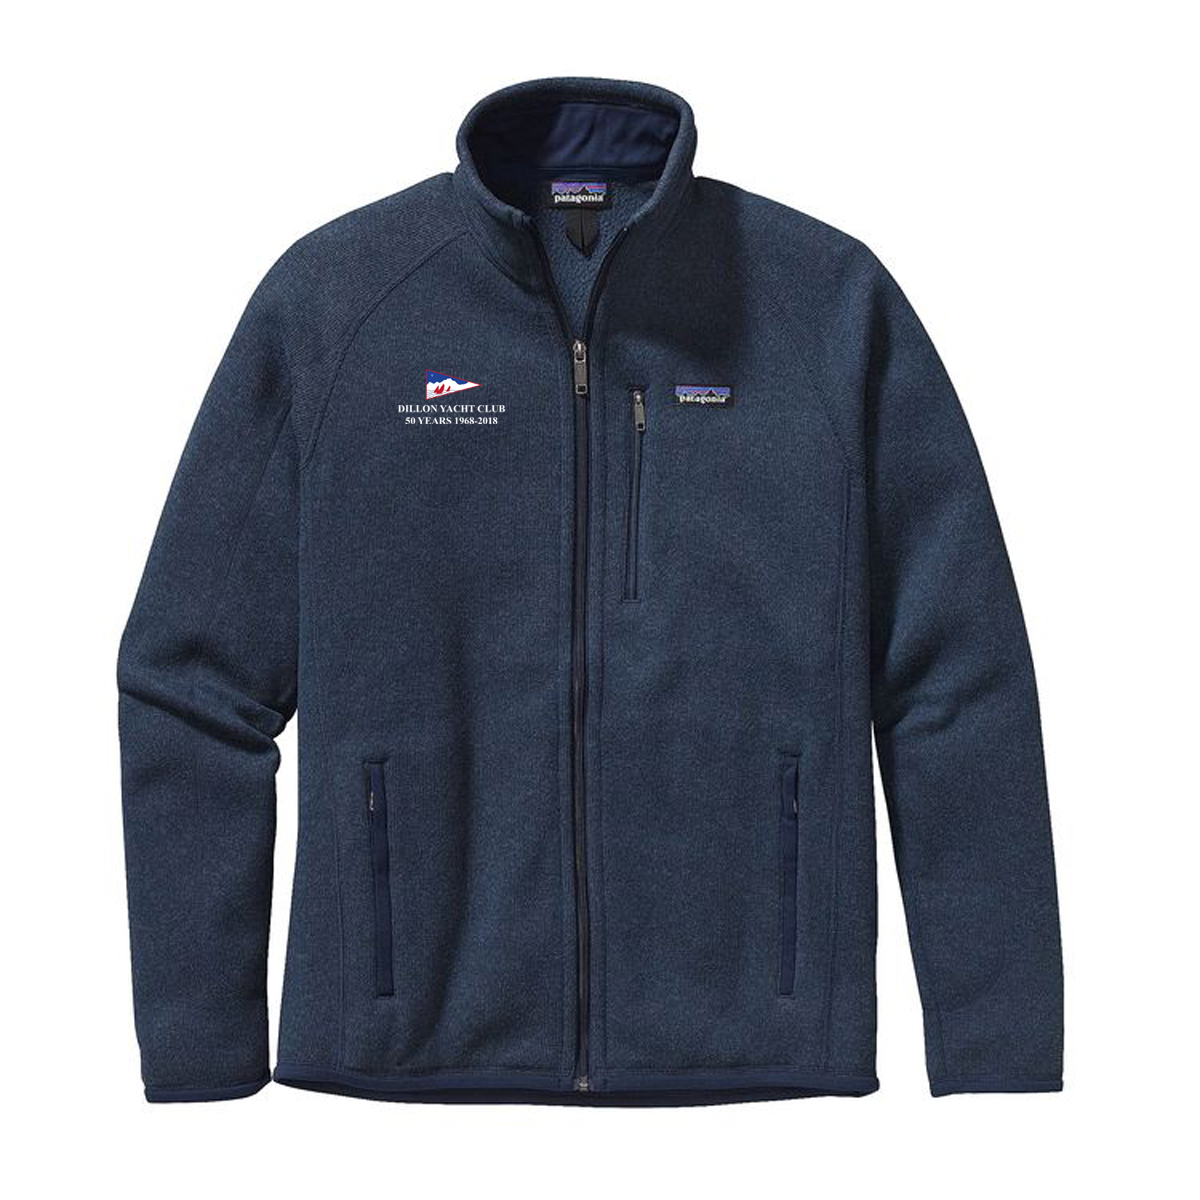 DILLON YACHT CLUB 50YR- M'S PATAGONIA BETTER SWEATER JACKET